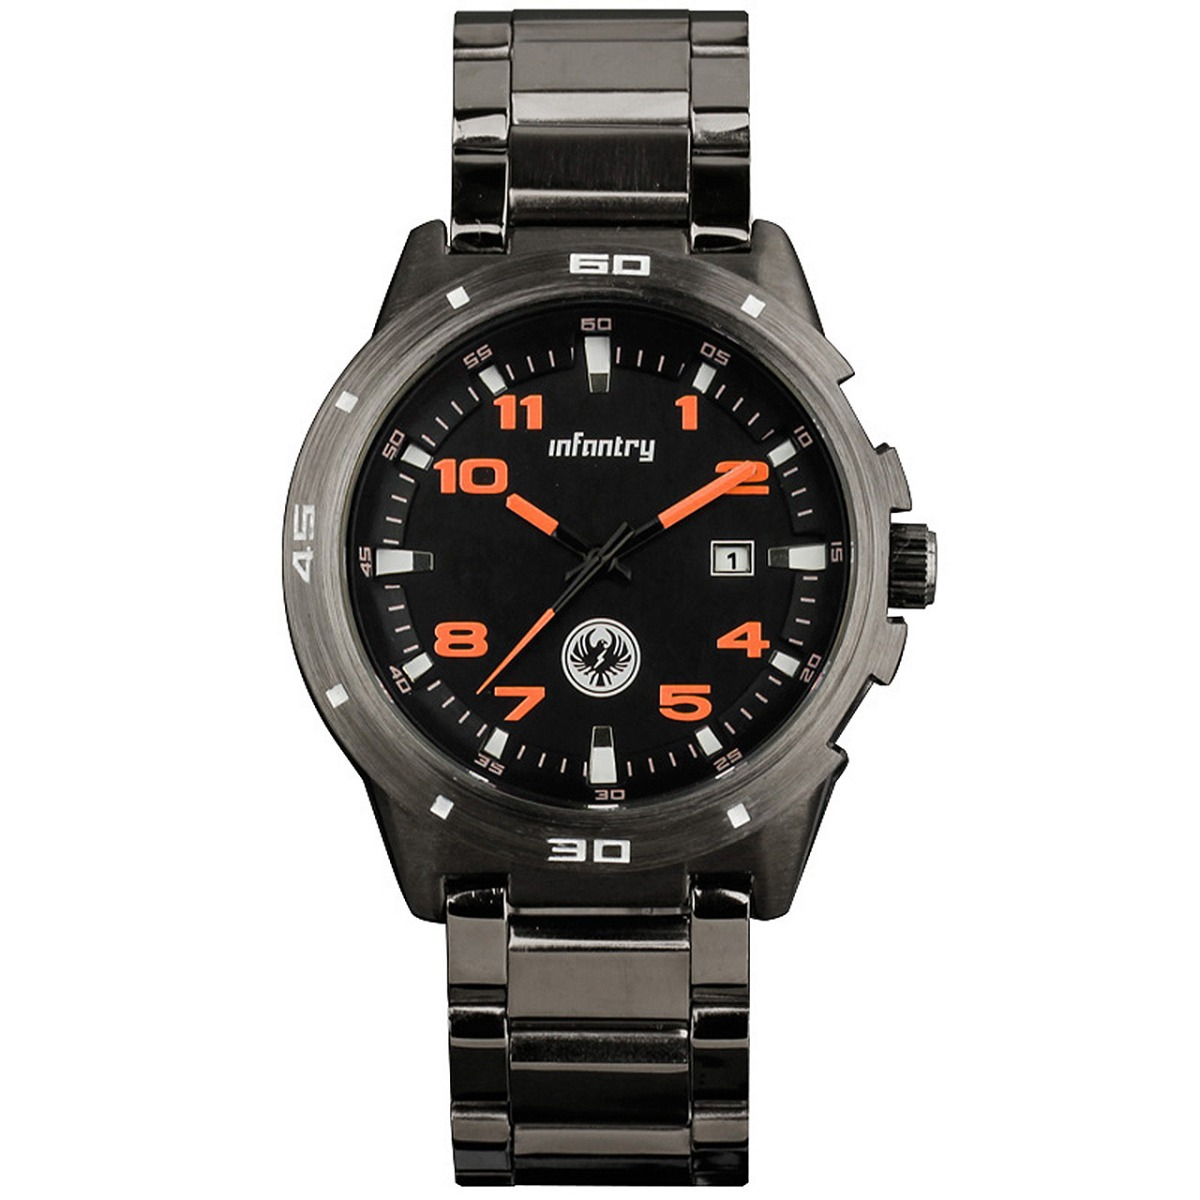 New-INFANTRY-Gunmetal-Black-Mens-Army-Black-Stainless-Steel-Wrist-Watch-Quartz